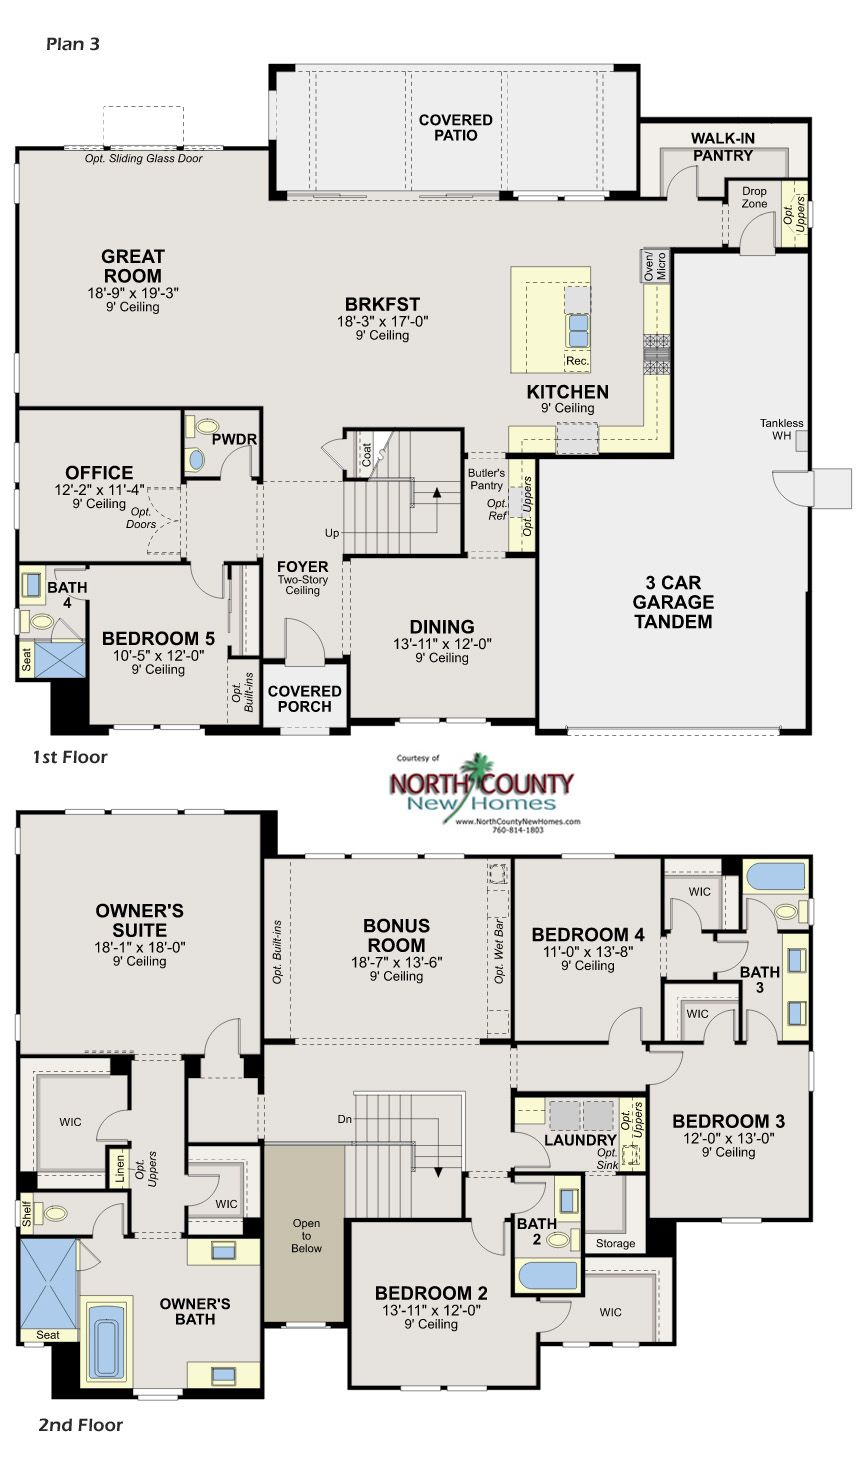 Whittingham At Harmomy Grove Village North County New Homes House Plans House Layouts House Layout Plans